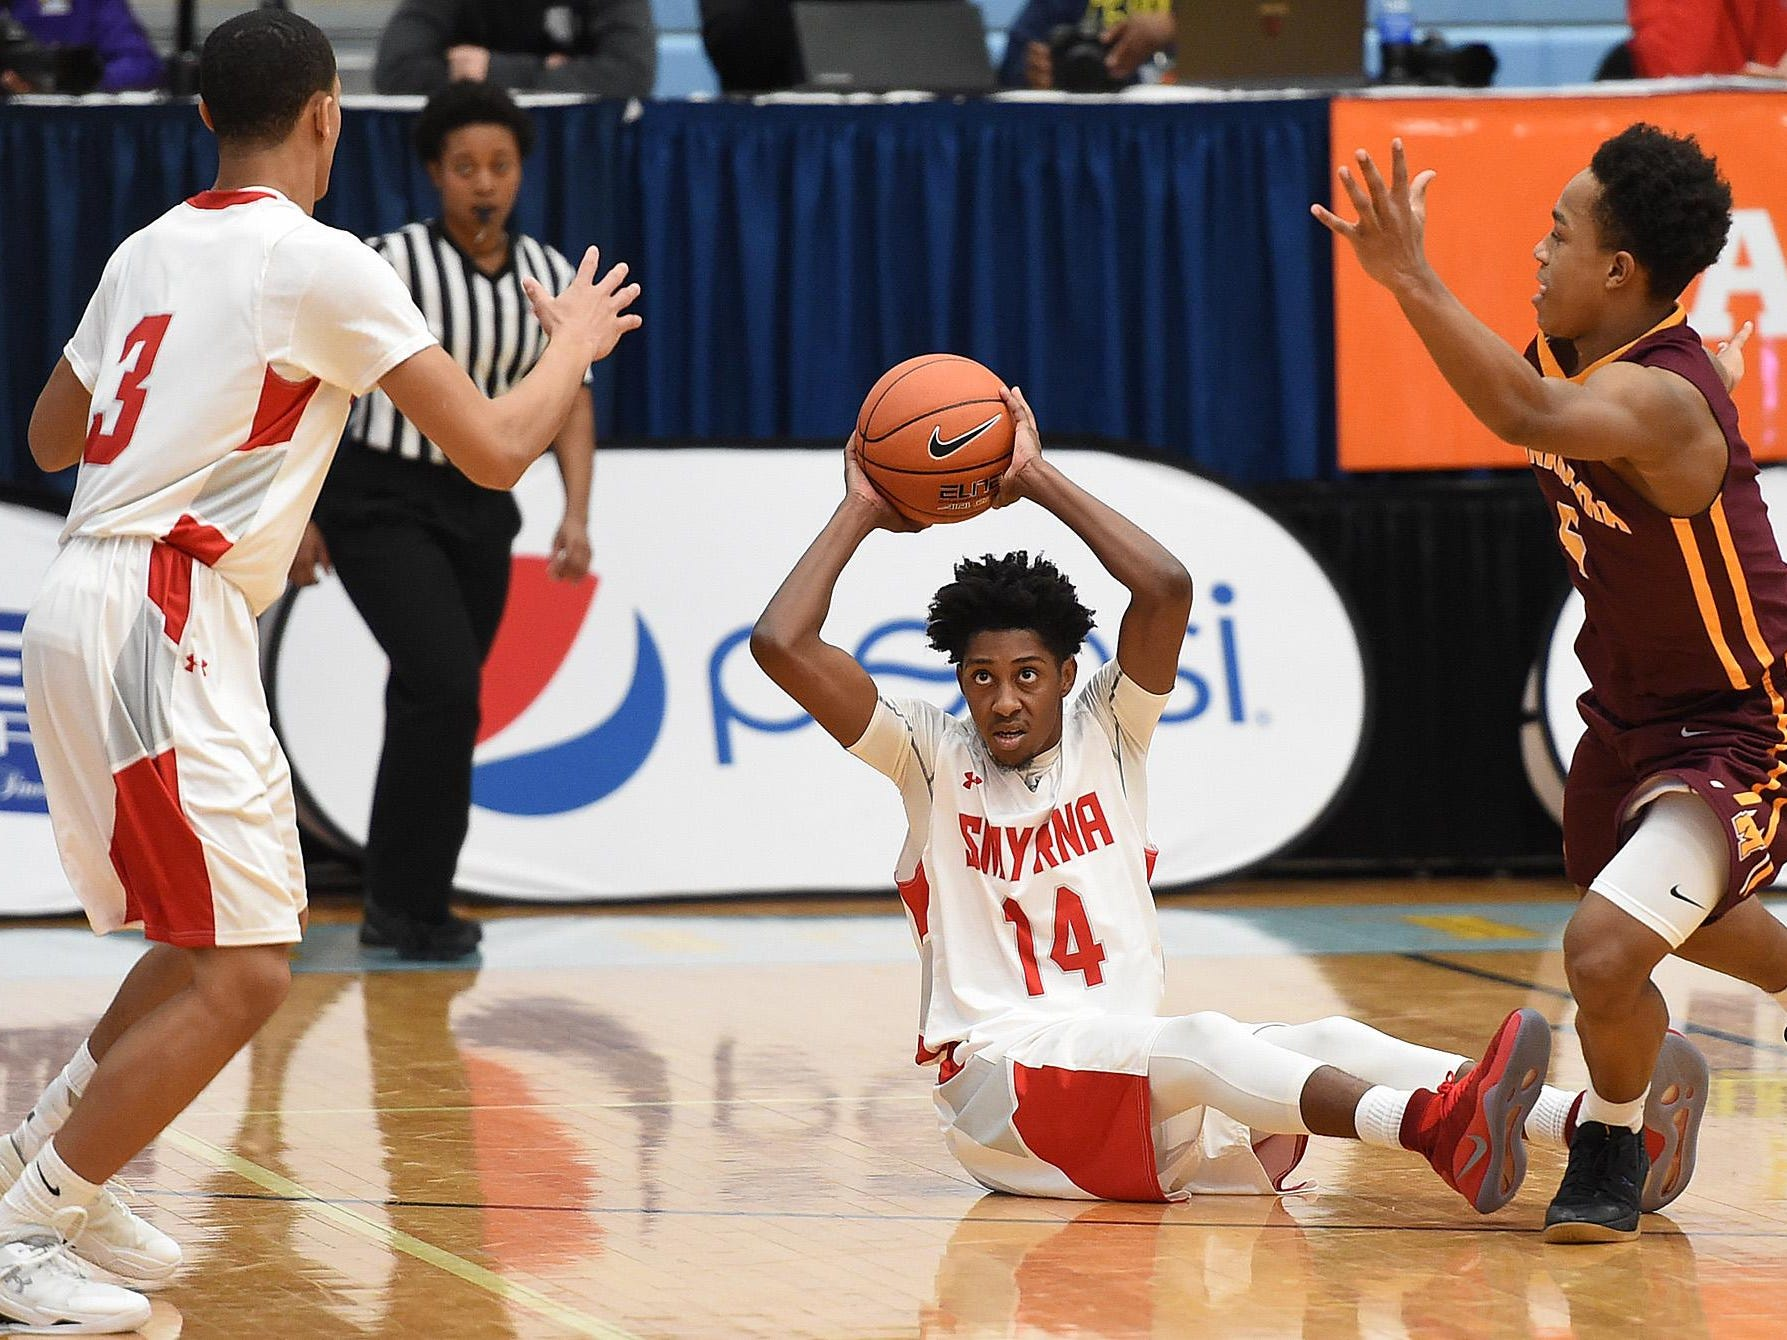 Smyrna's #14 Anthony Watson pass's the ball to #3 Zion Cole as The Annual Slam Dunk to the Beach Basketball Tournament started at Cape Henlopen High School in Lewes on Tuesday December 27th with Smyrna HS (white) hosting Bishop McNamara HS from Forestville, Md.